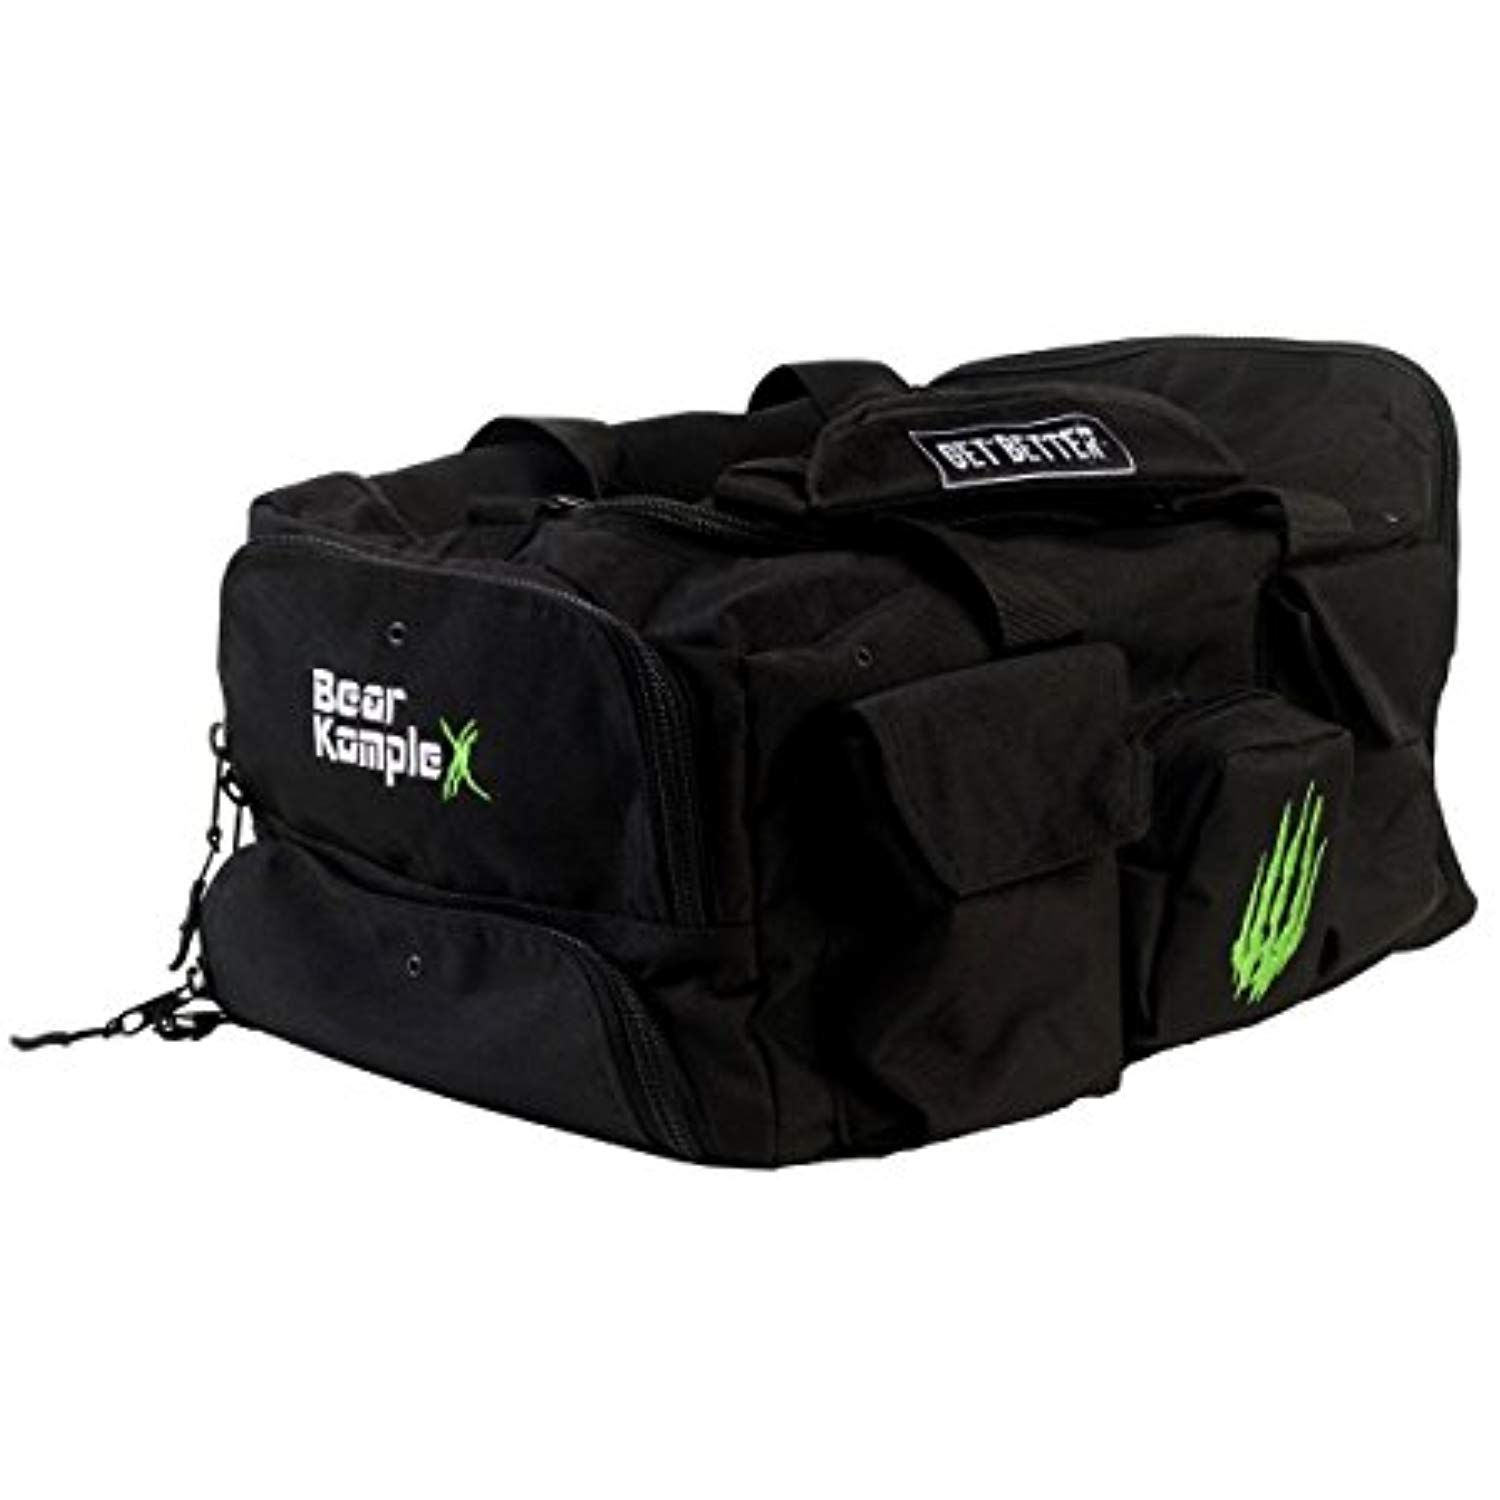 Bear Komplex Gym Bag Tactical Rucksack For Hunting Fitness